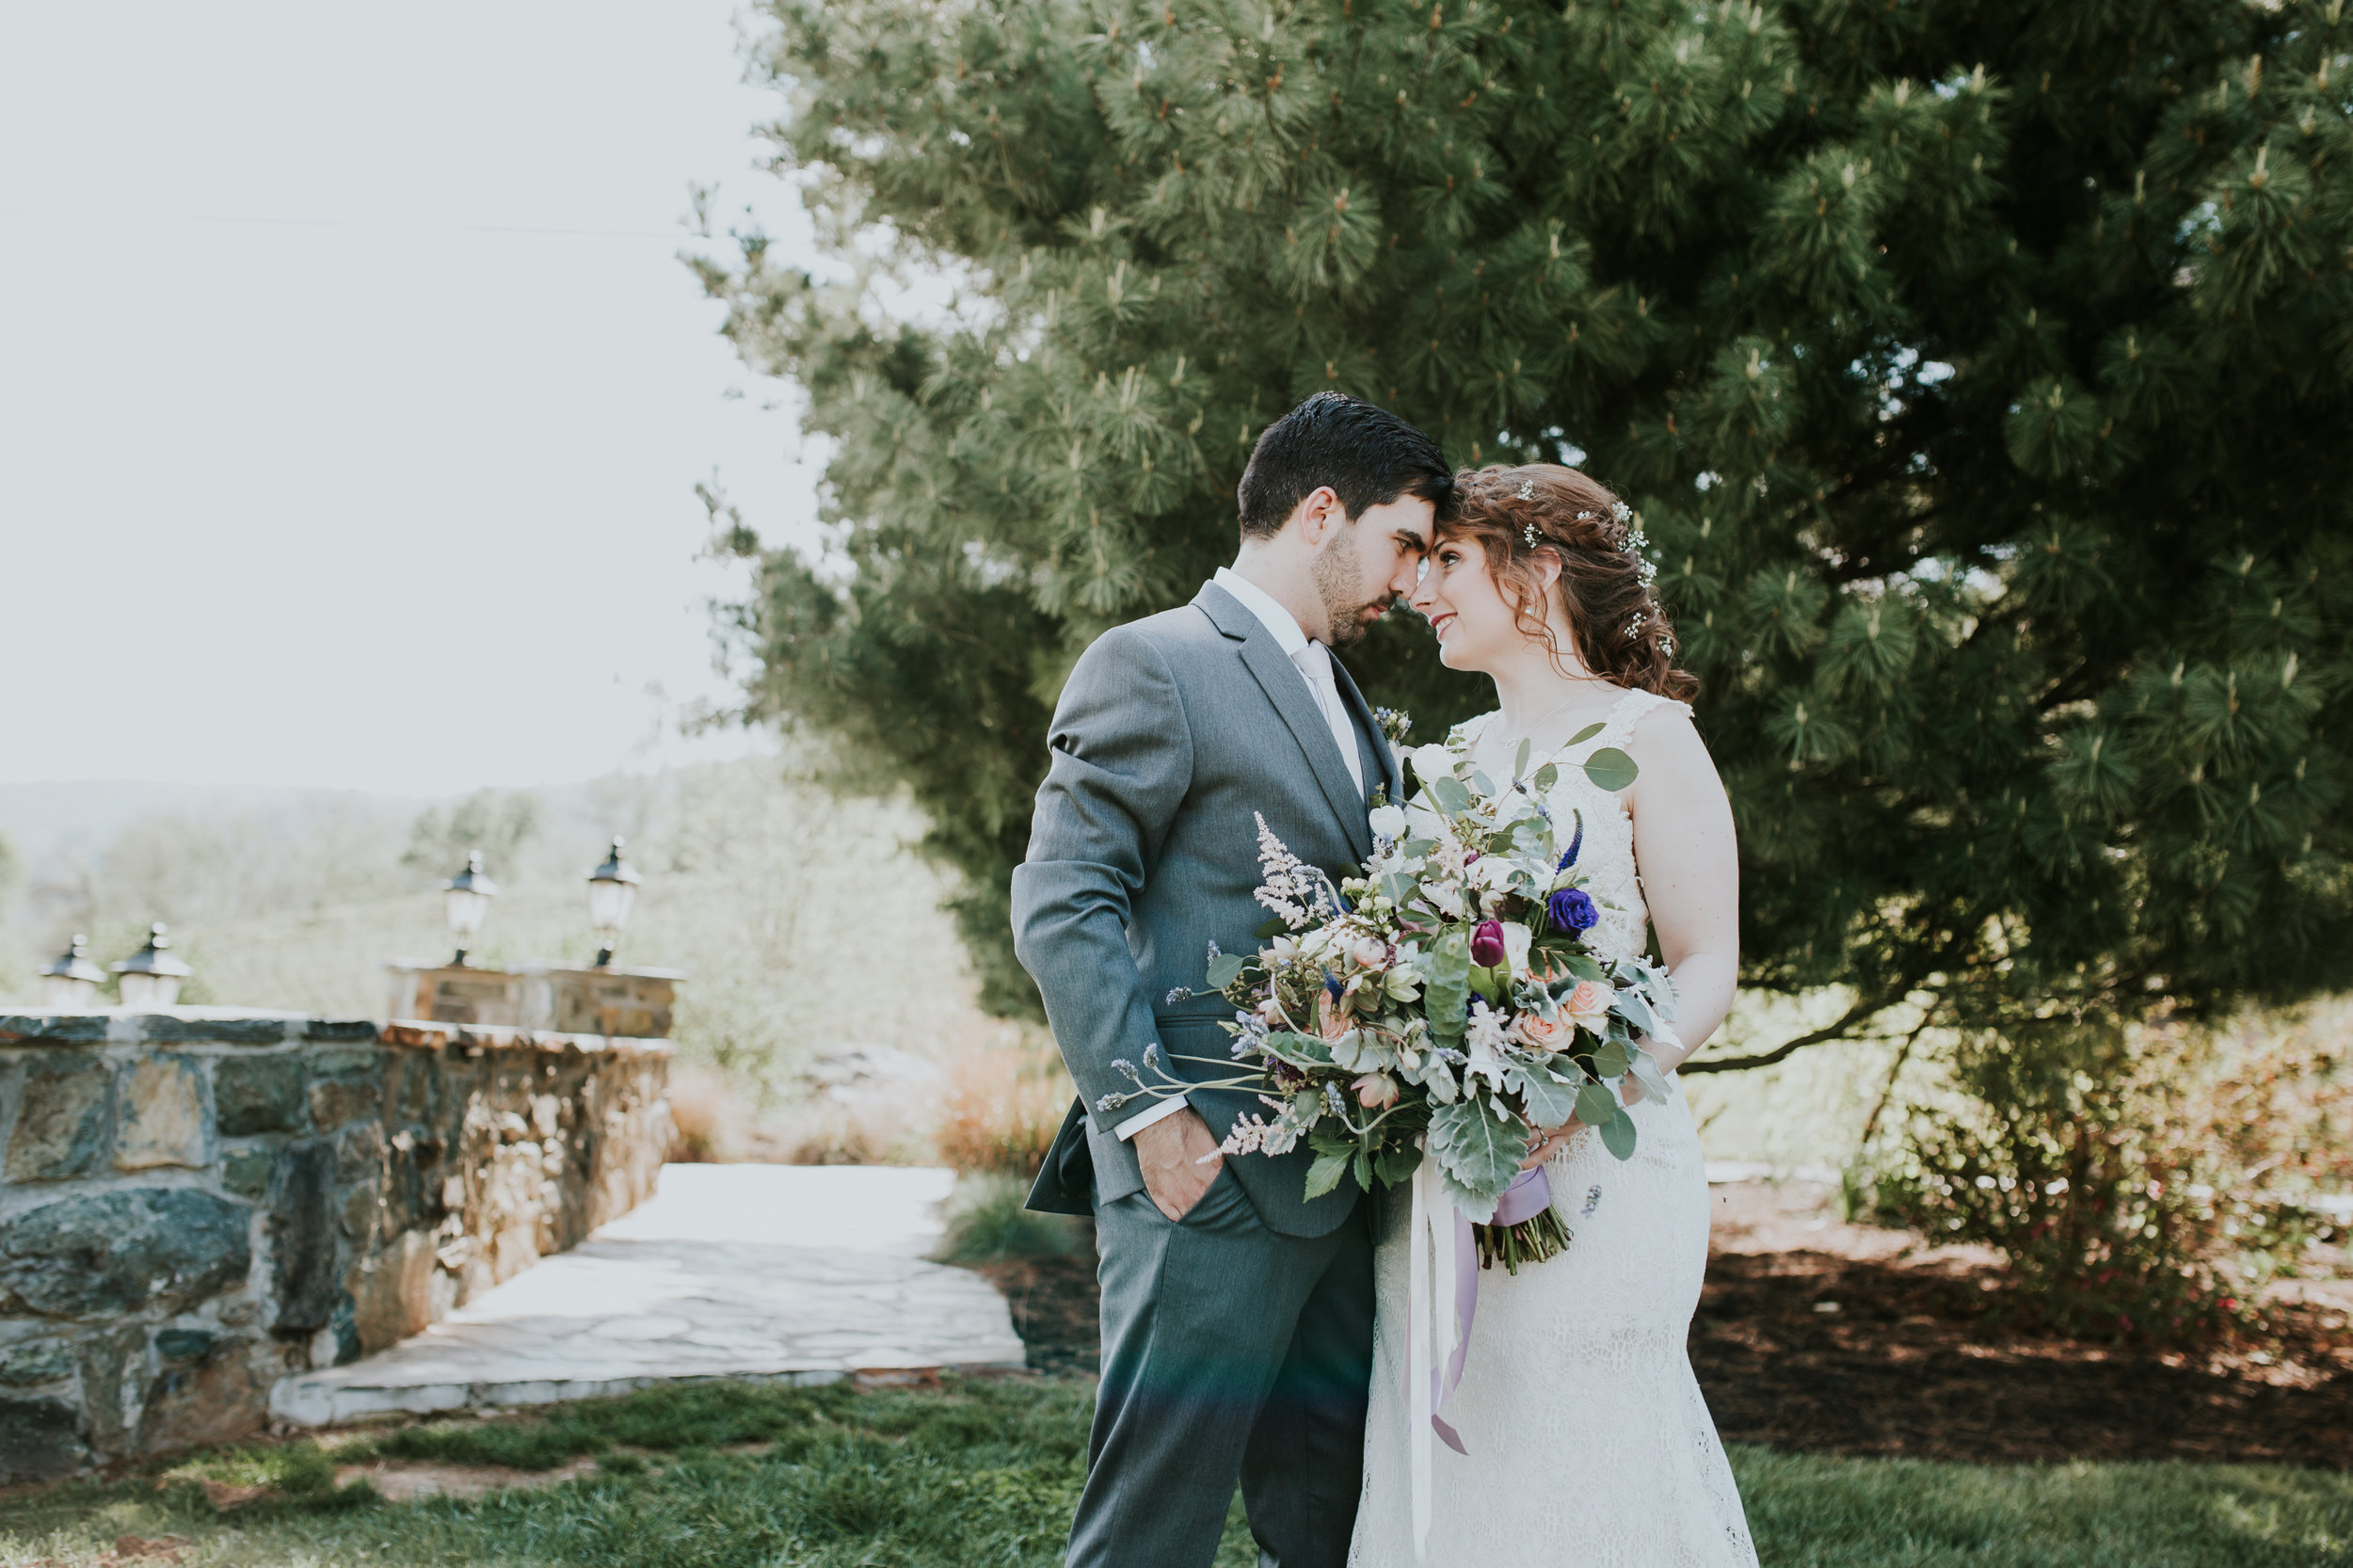 Bluemont Vineyard Wedding Photo - VnessPhotography